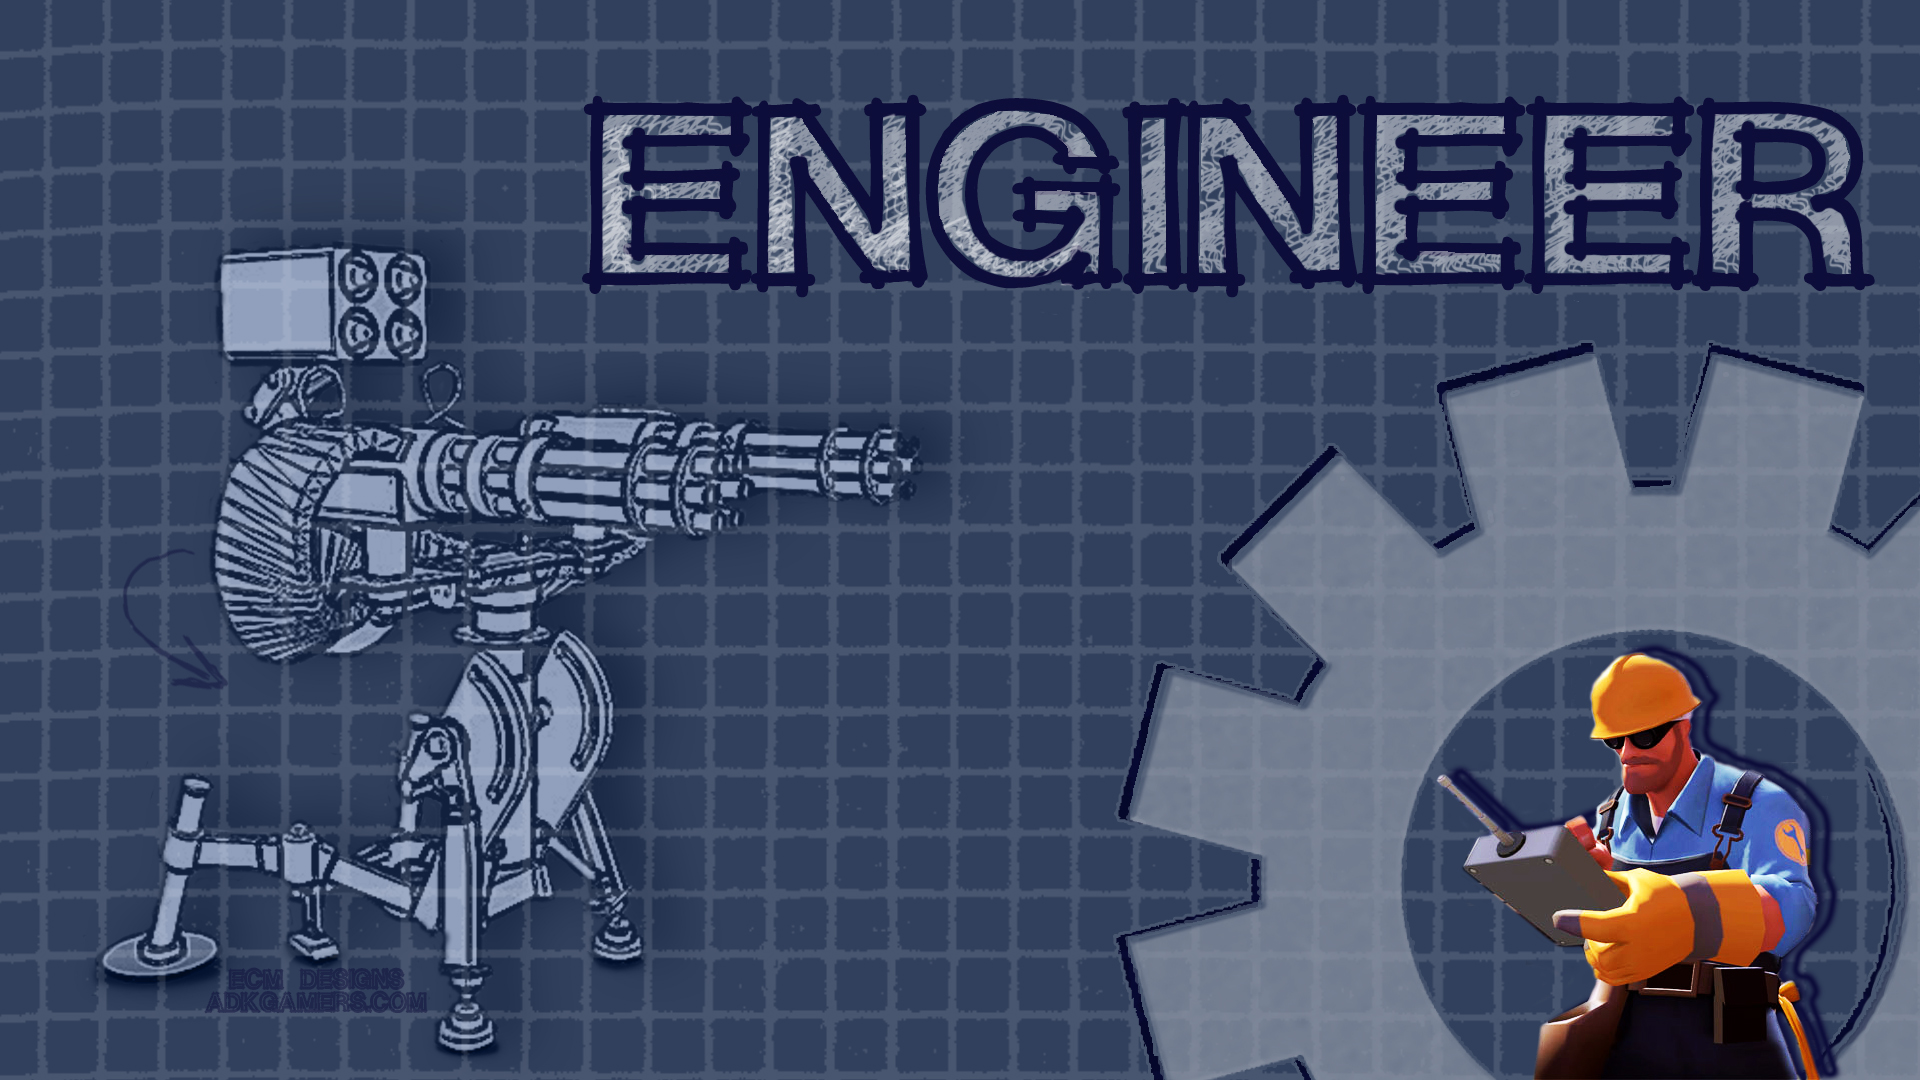 happy engineers day 2016